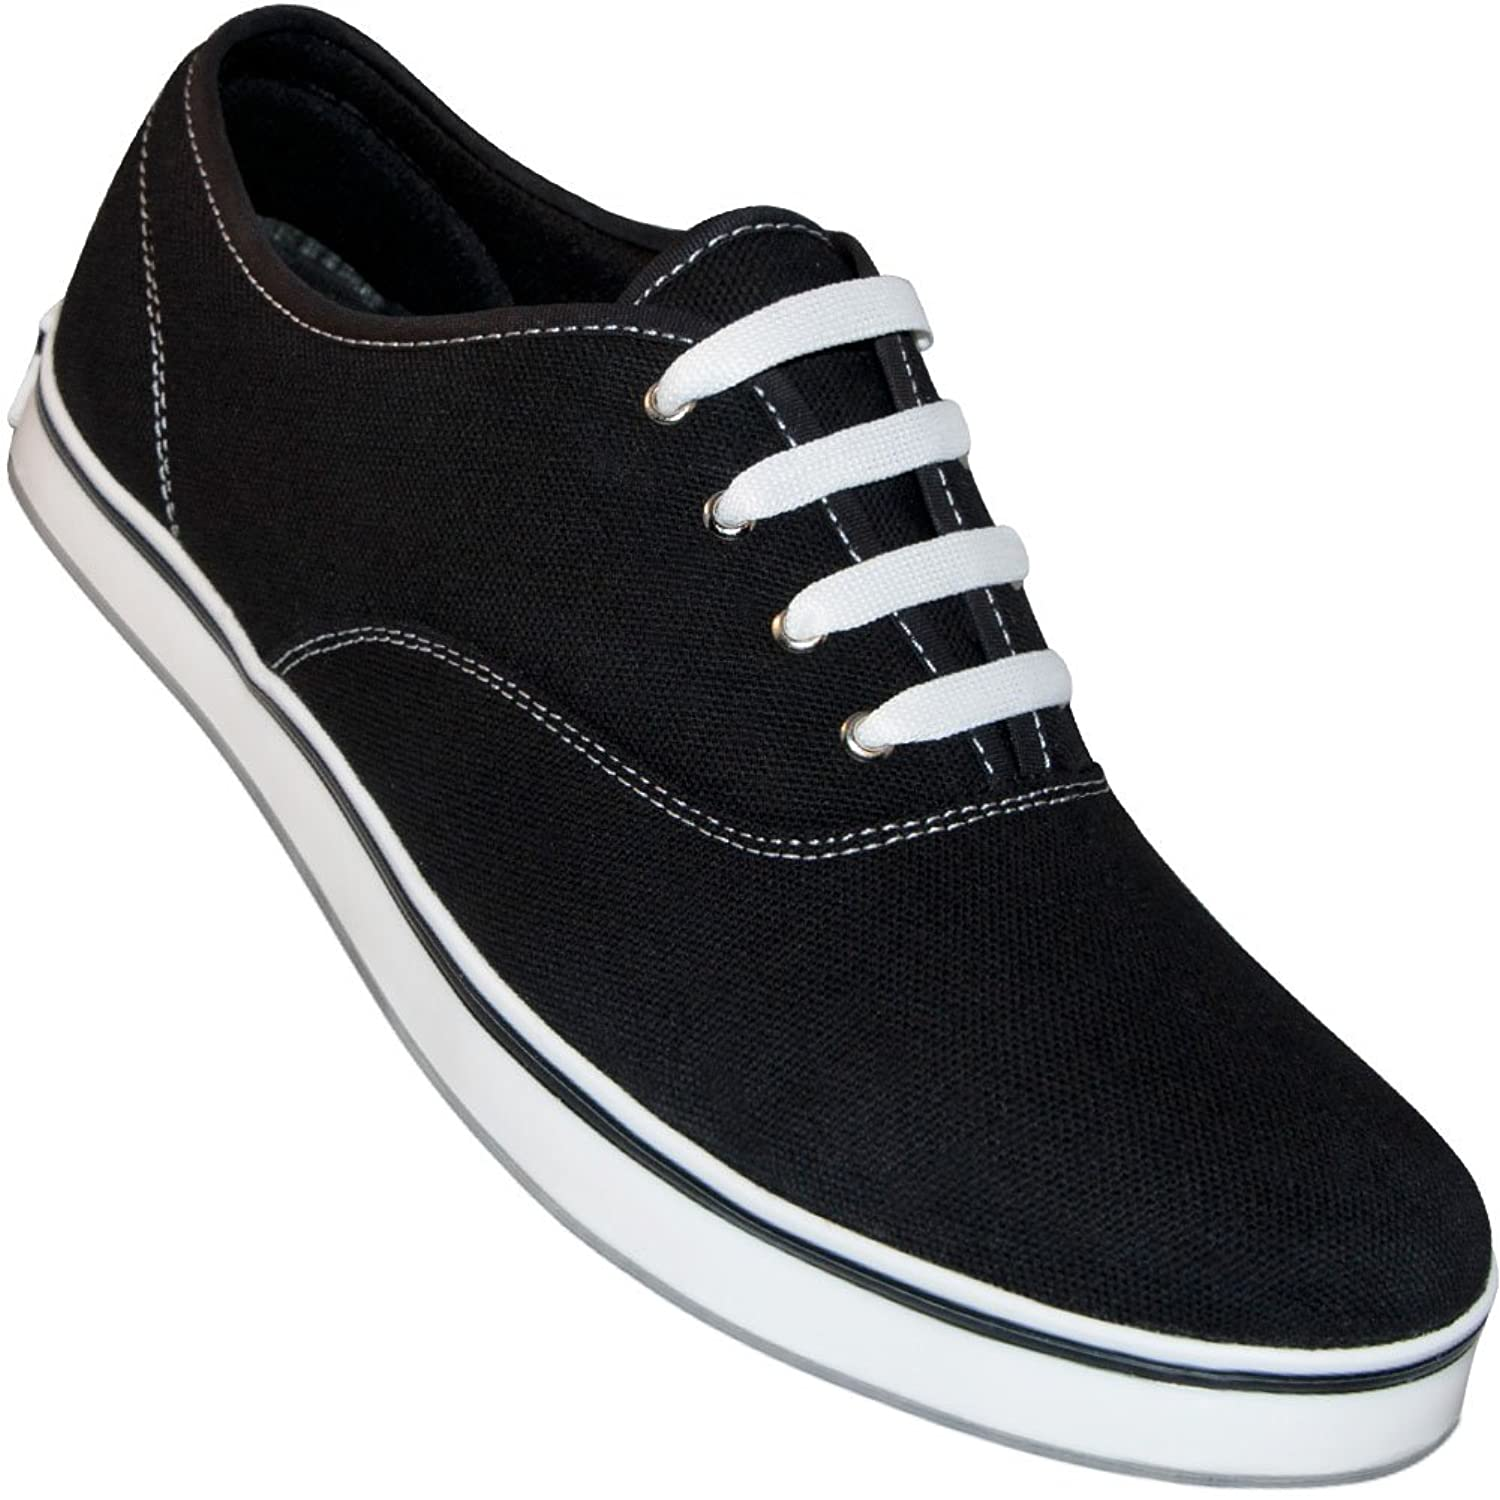 Rockabilly Men's Clothing Aris Allen Mens Black Classic Dress Dance Sneaker $48.95 AT vintagedancer.com